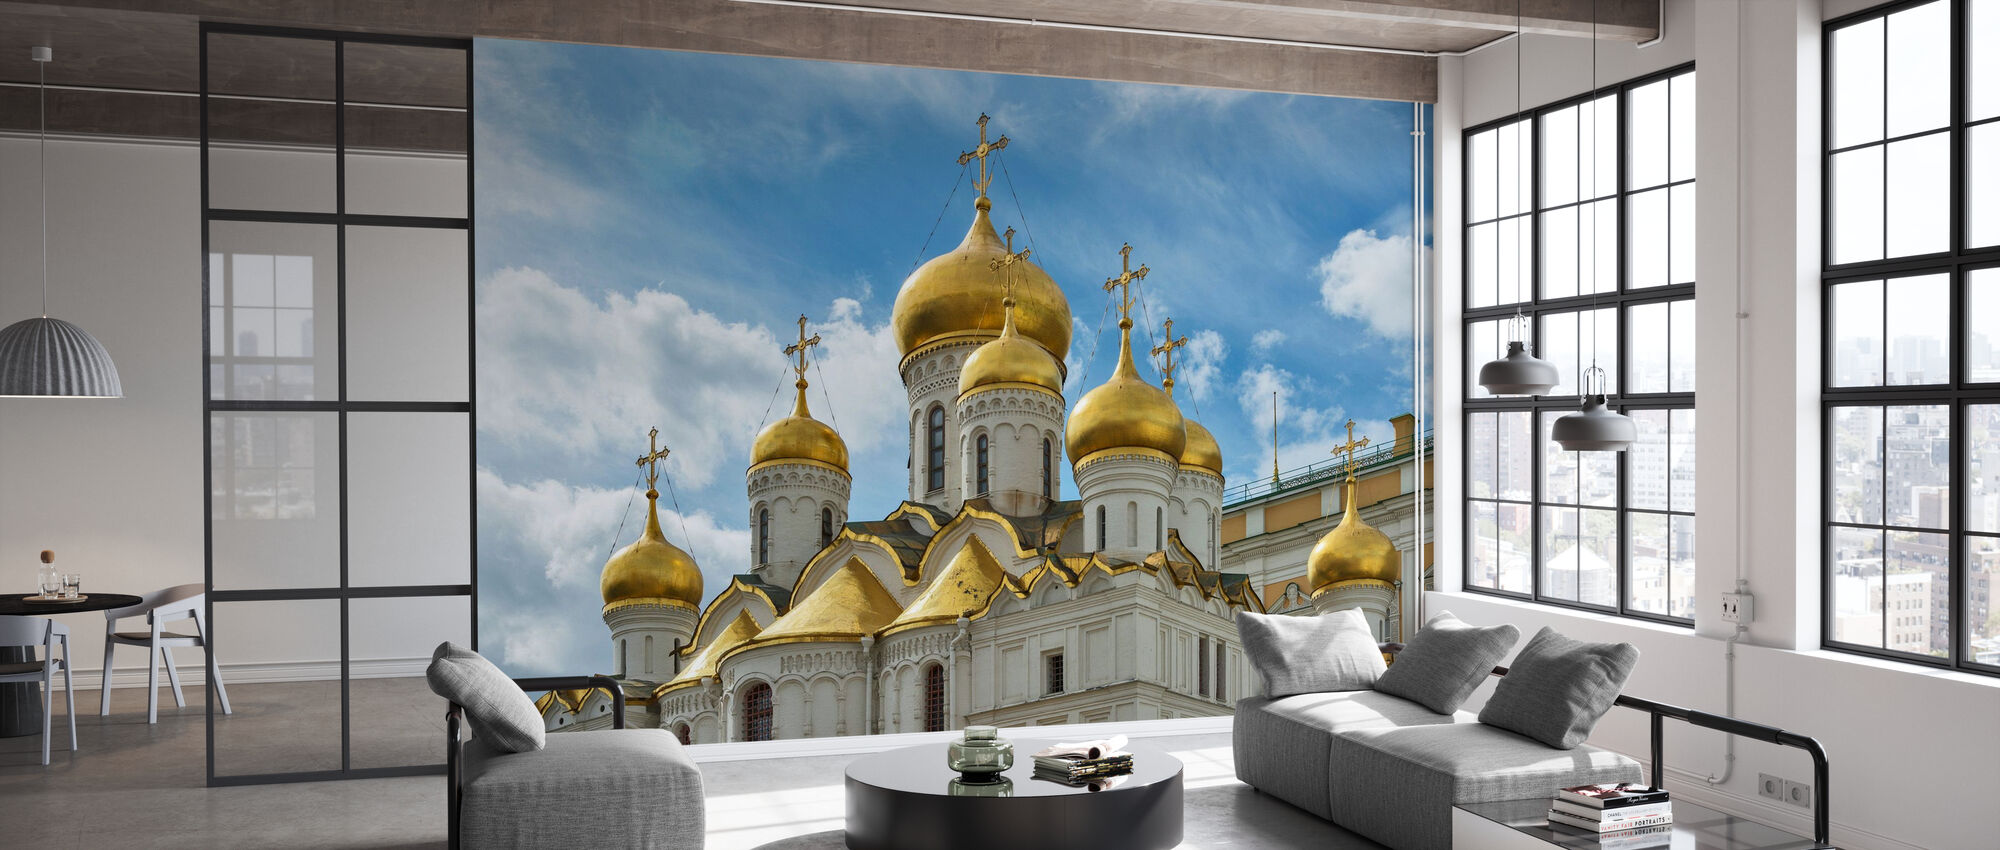 The Cathedral of the Annunciation - Wallpaper - Office